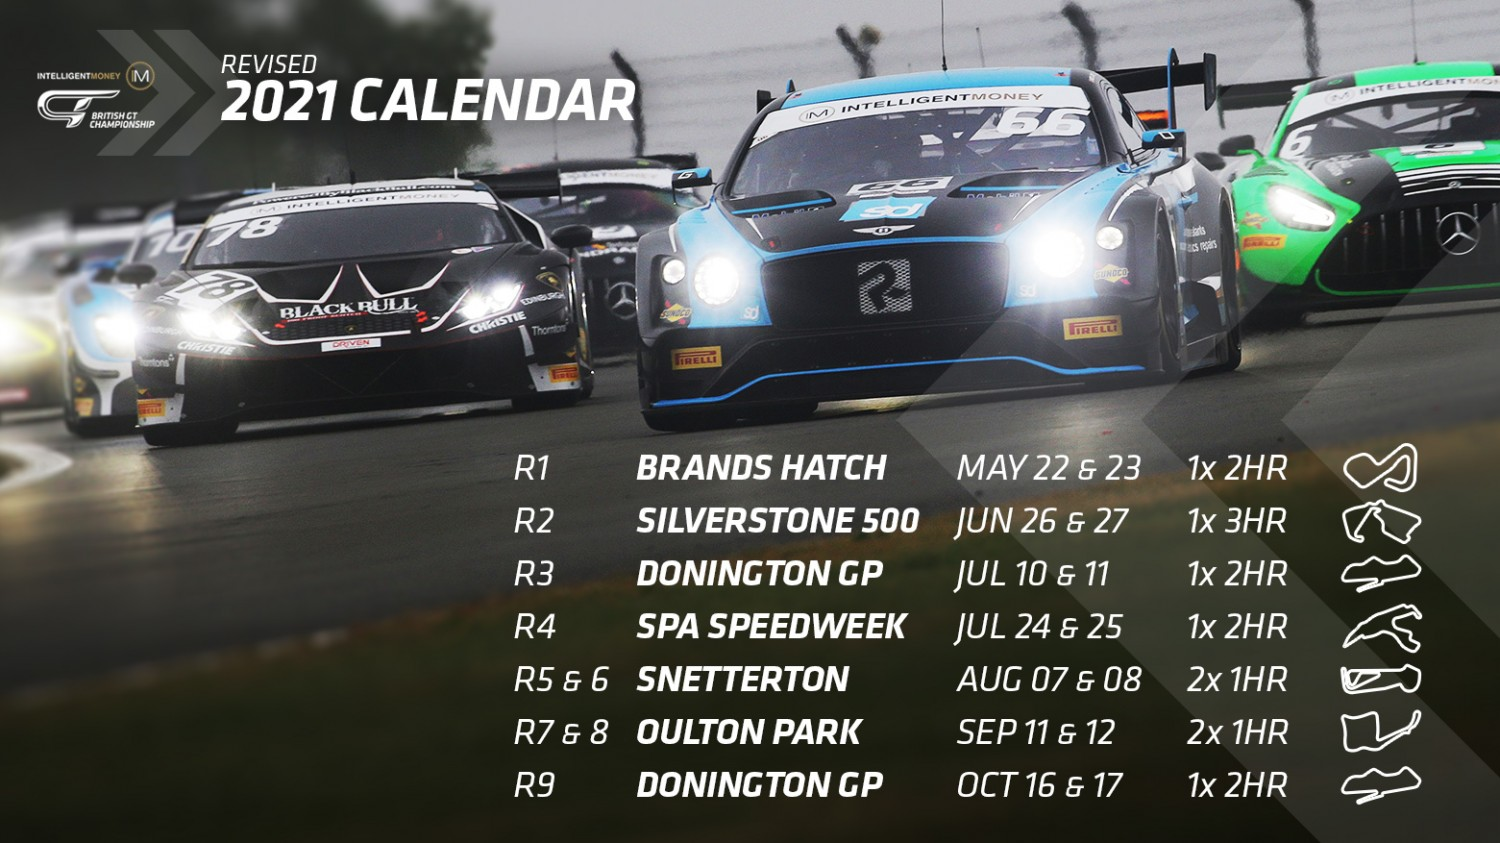 SRO Motorsports Group issues revised 2021 Intelligent Money British GT Championship calendar